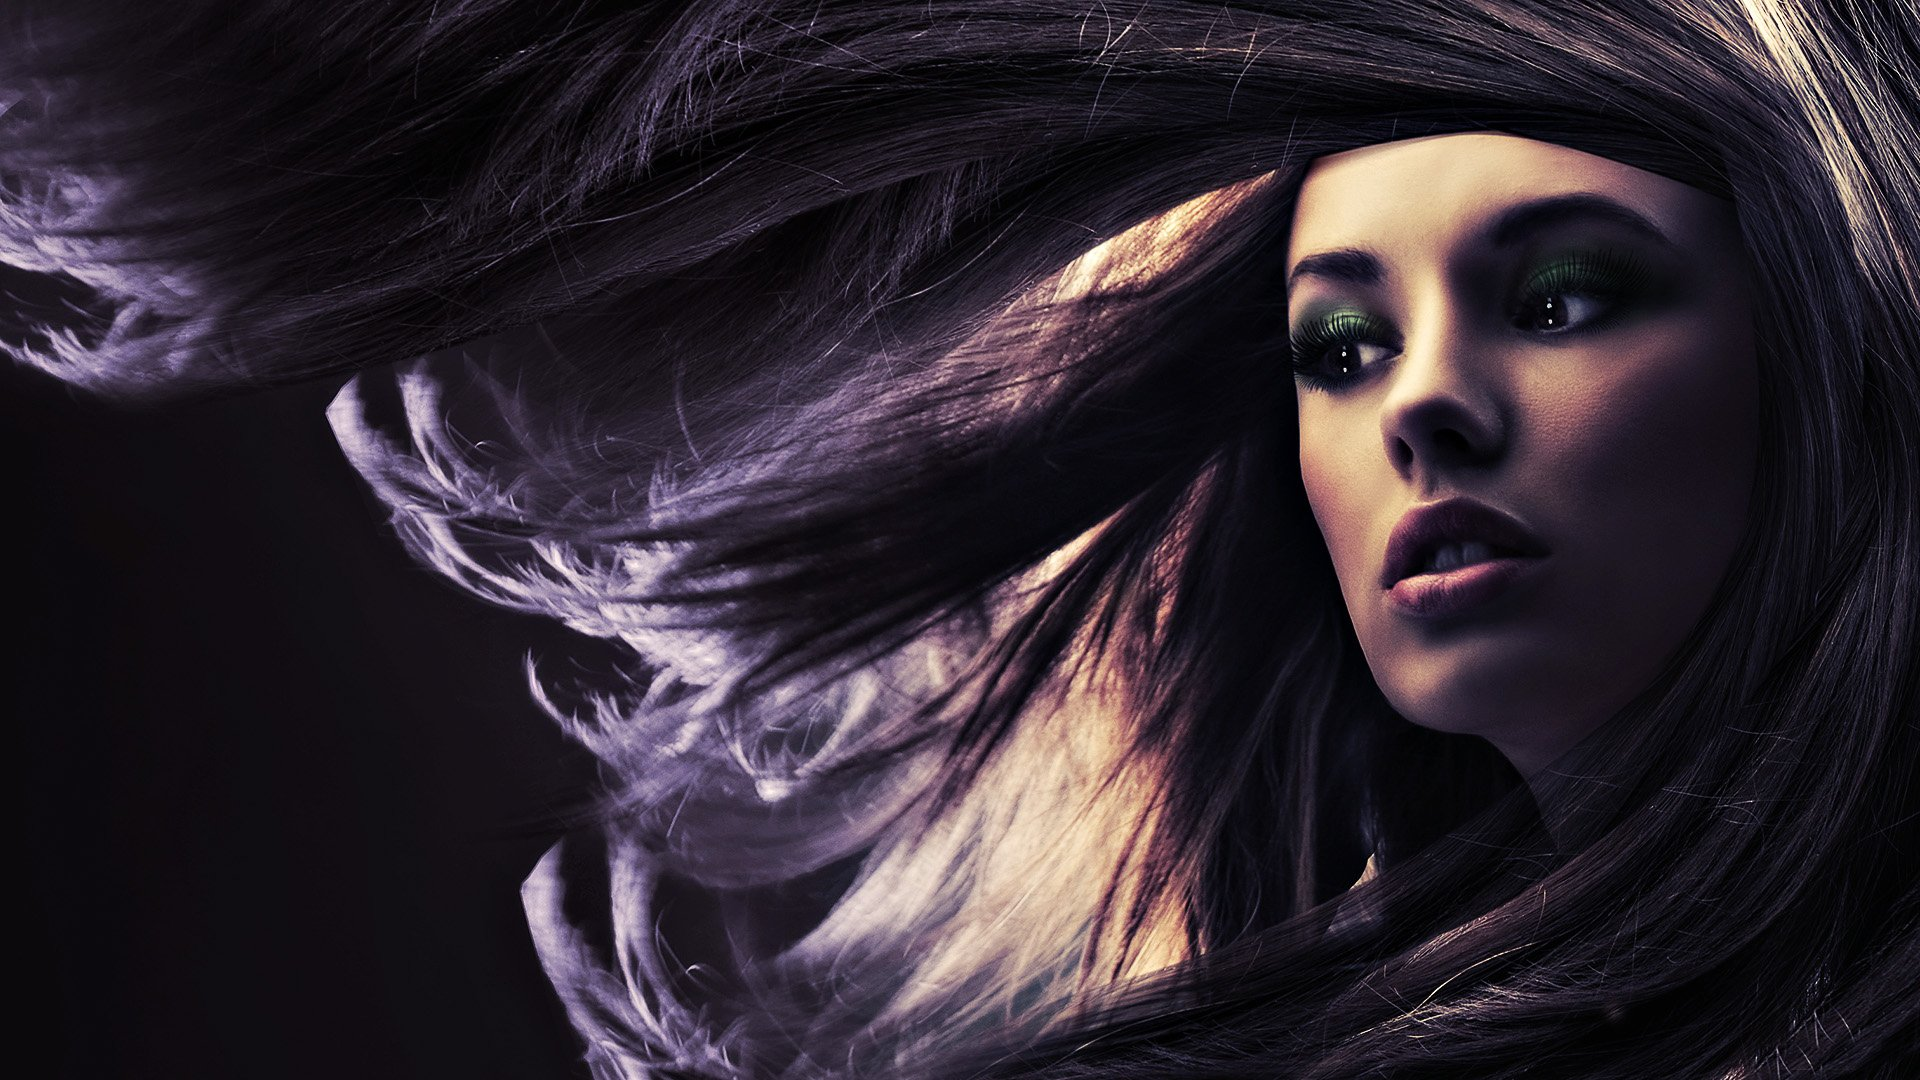 hair design backgrounds - photo #27